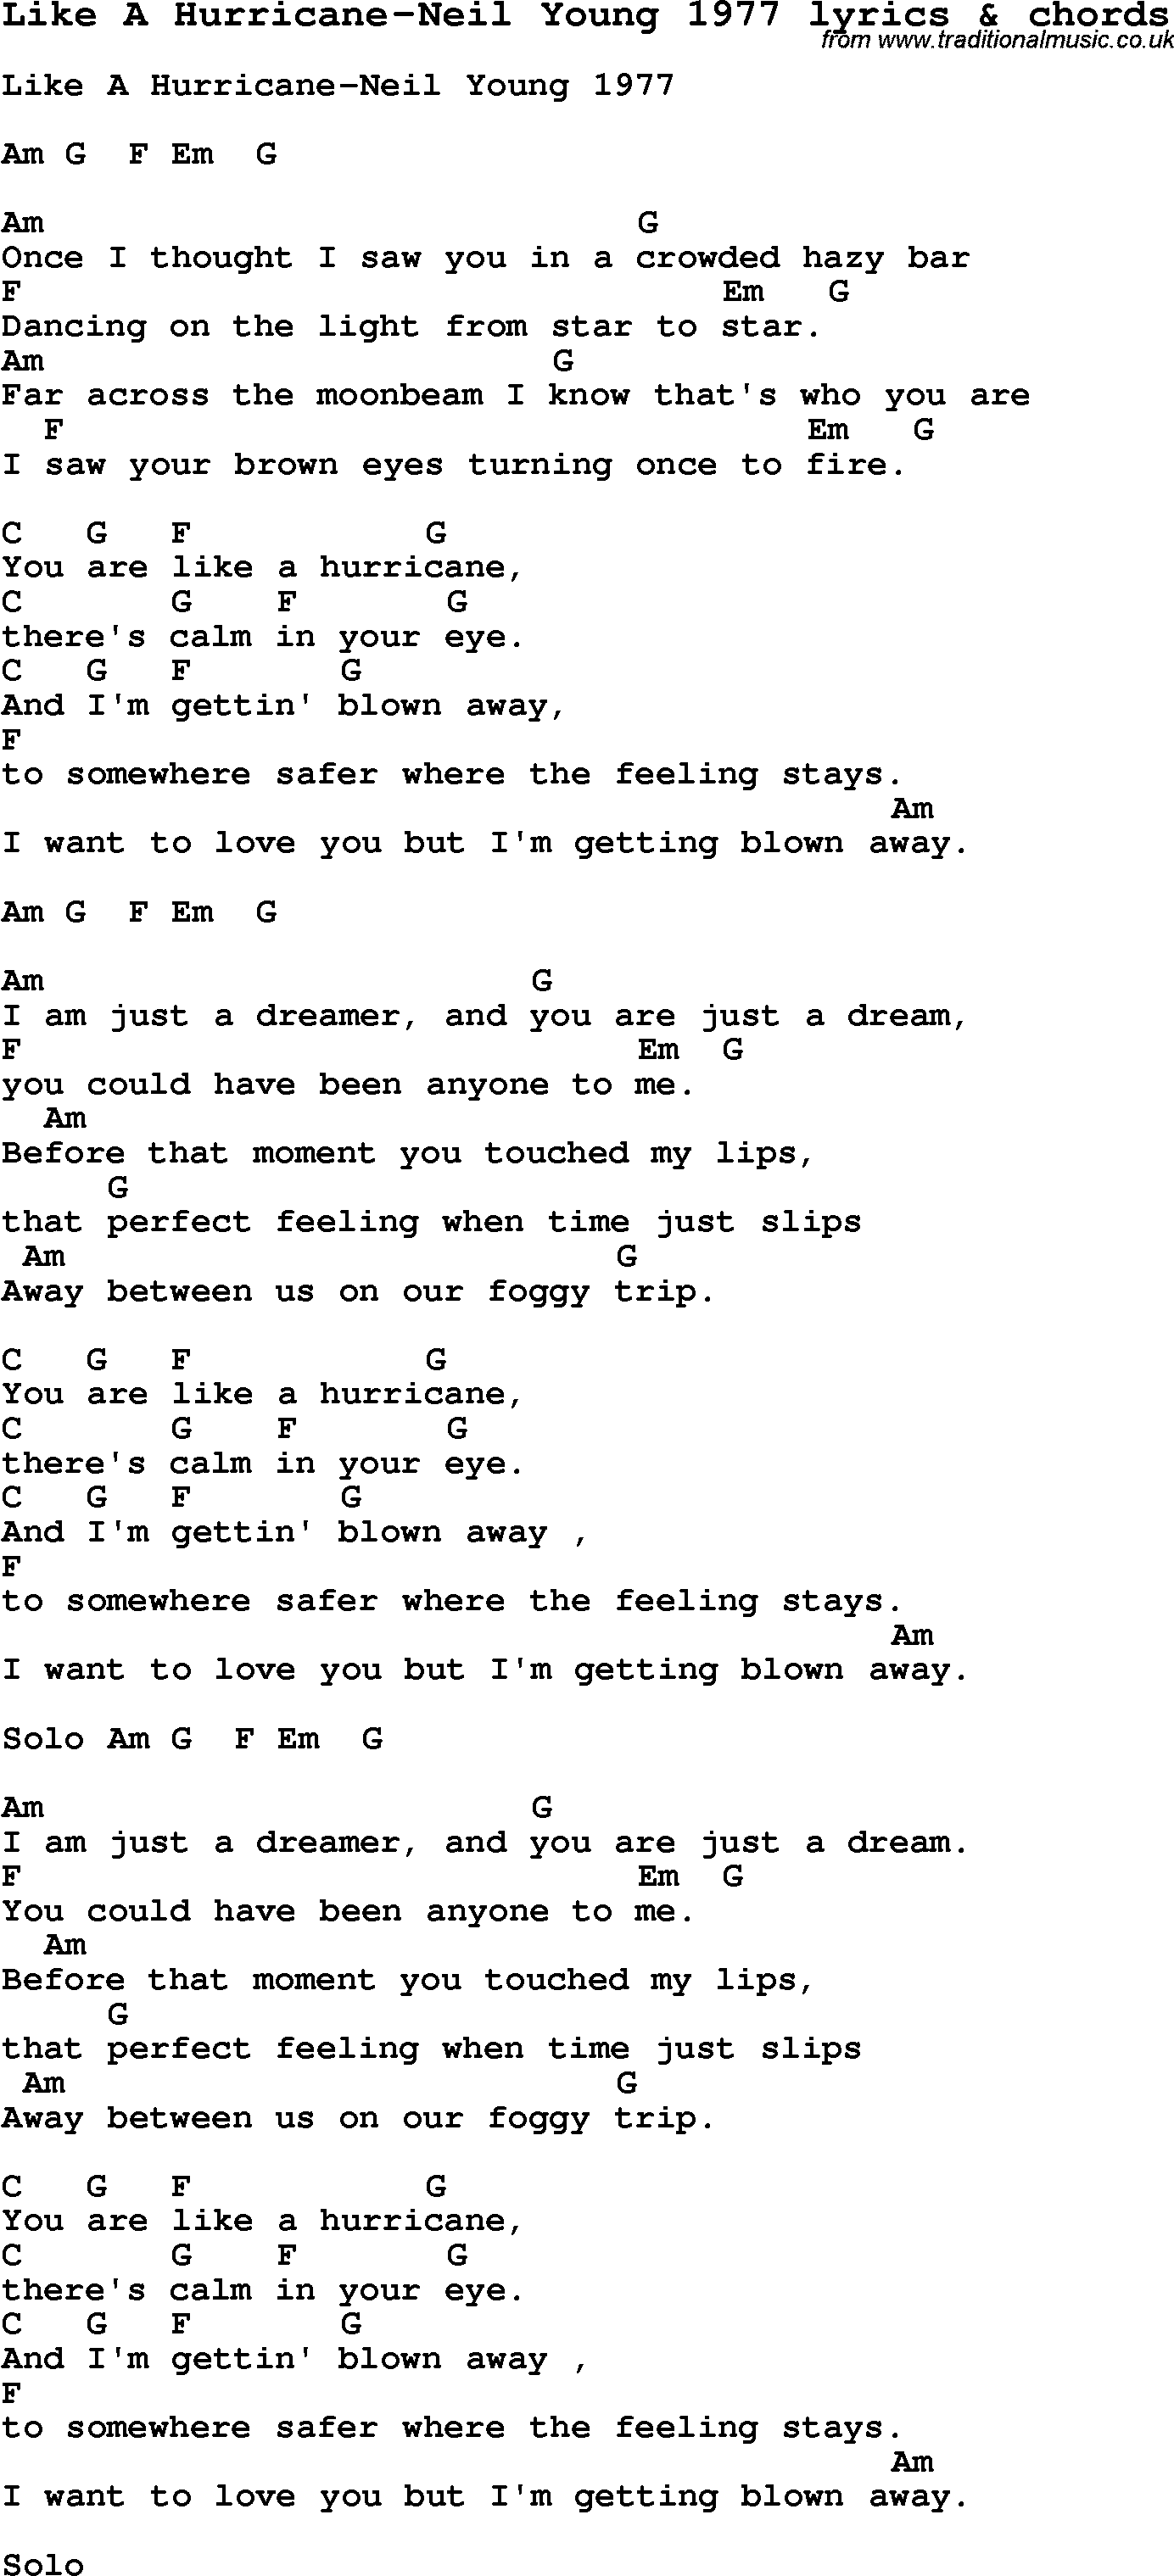 Love song lyrics forlike a hurricane neil young 1977 with chords love song lyrics for like a hurricane neil young 1977 with chords for ukulele hexwebz Gallery